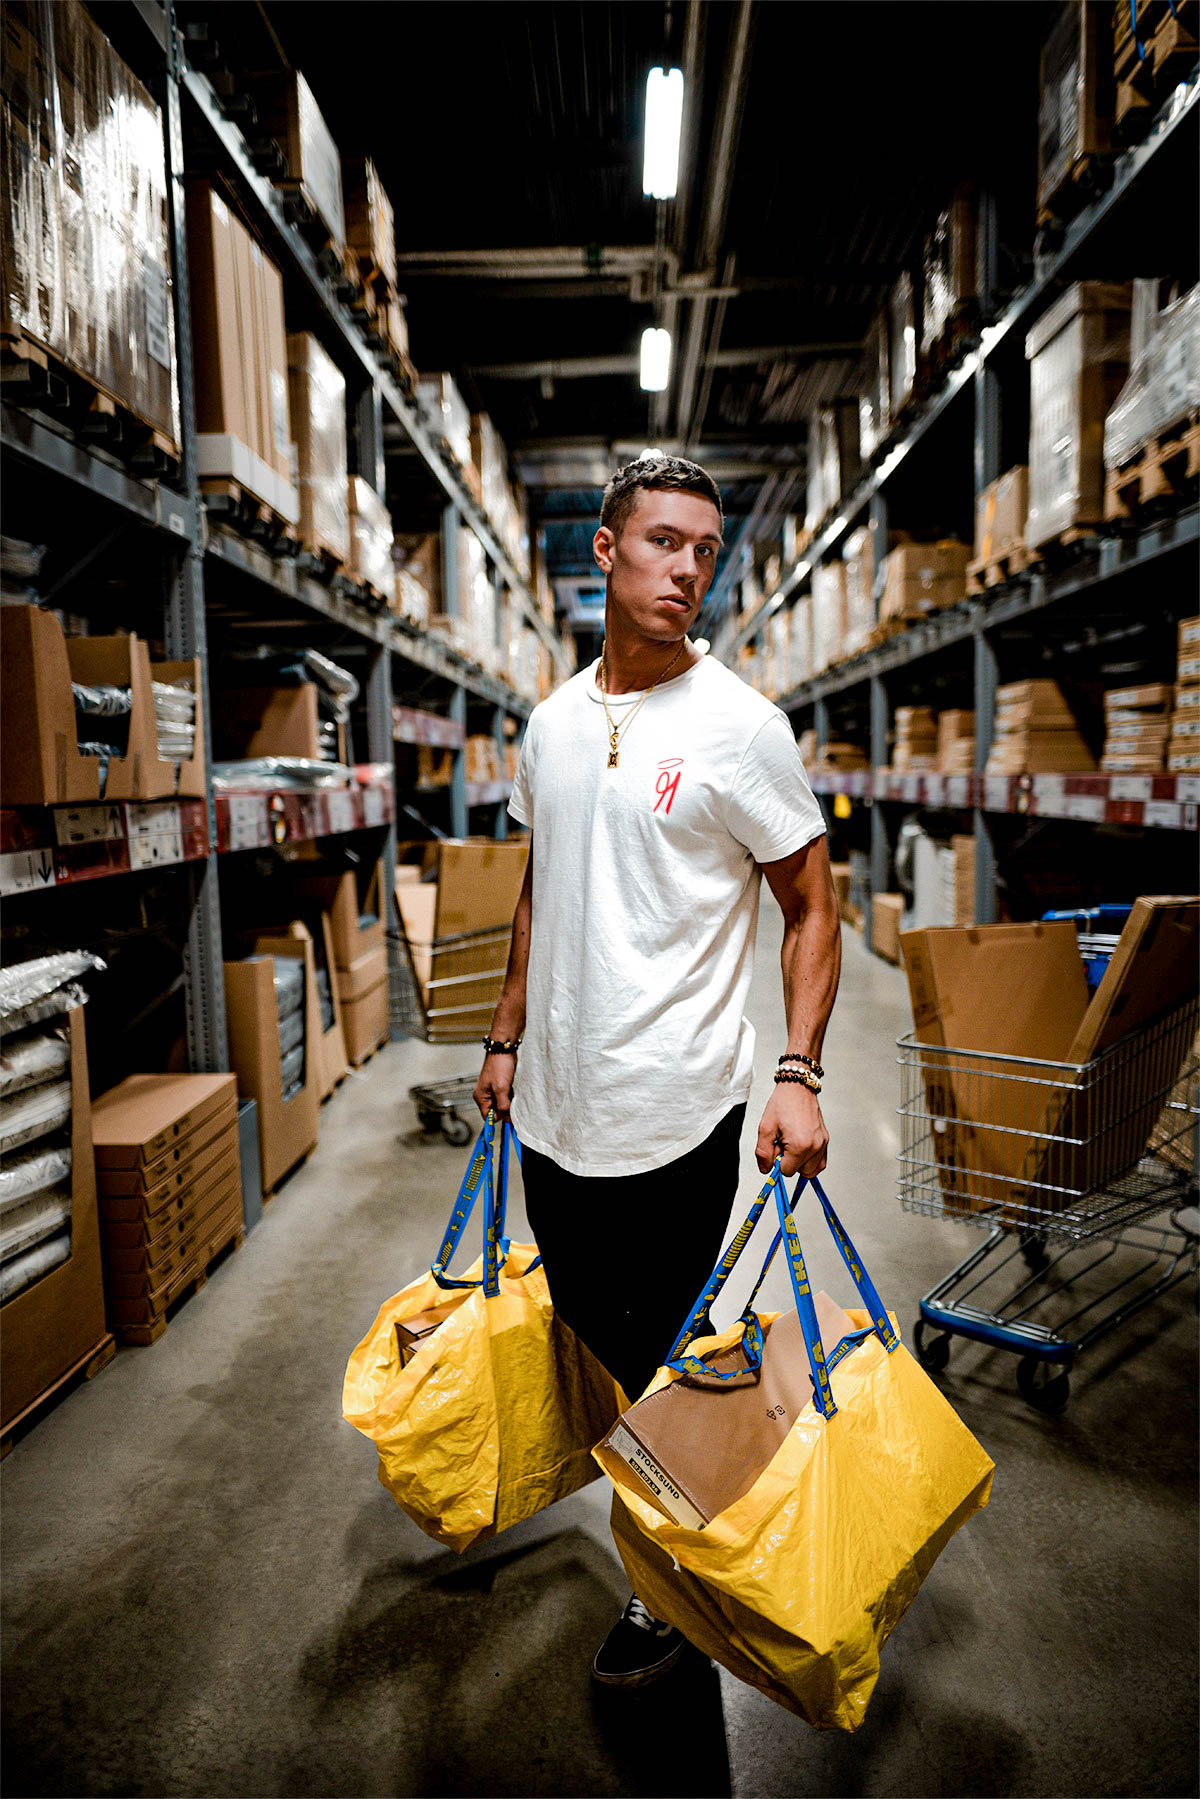 Handsome man in IKEA holding bags wearing shirt by 91 APPAREL